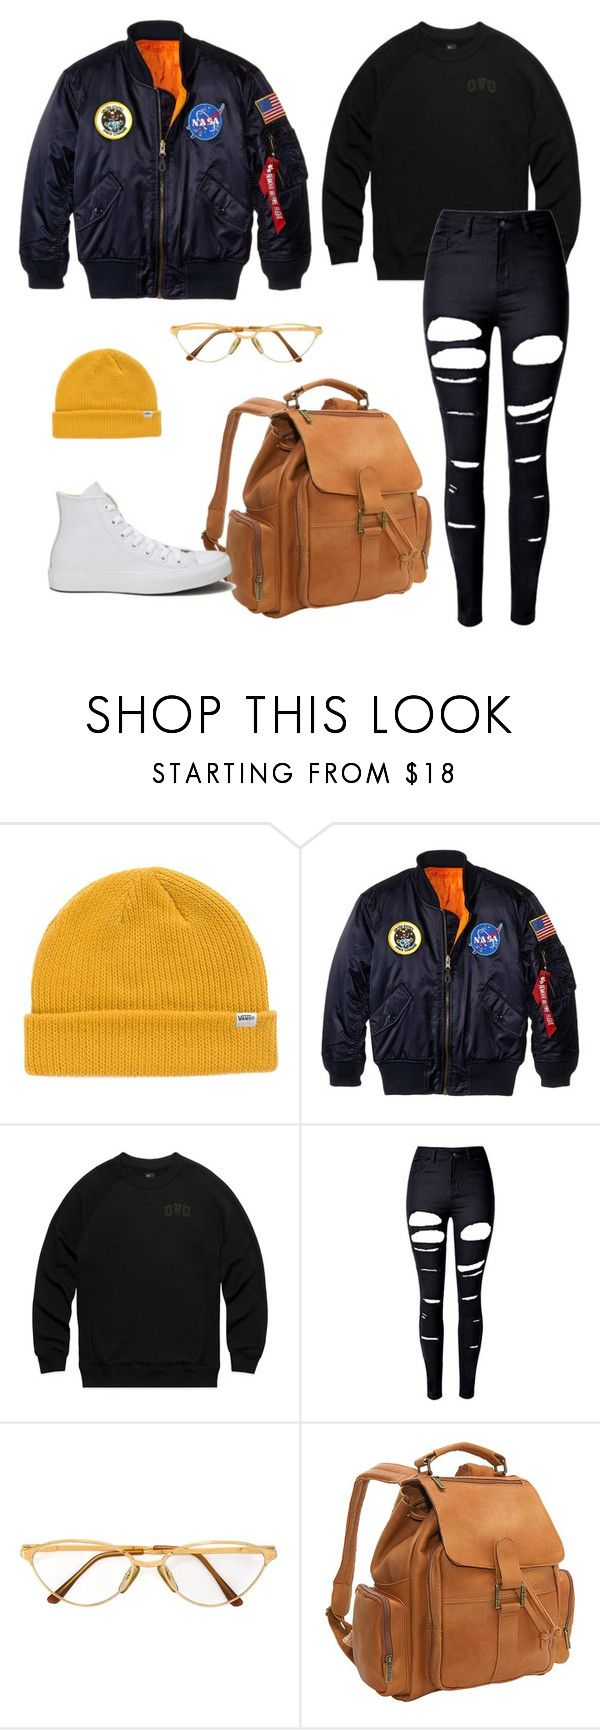 """RUNCH#11"" by celine-gero ❤ liked on Polyvore featuring Vans, Alpha Industries, WithChic, Persol, Le Donne and Converse"